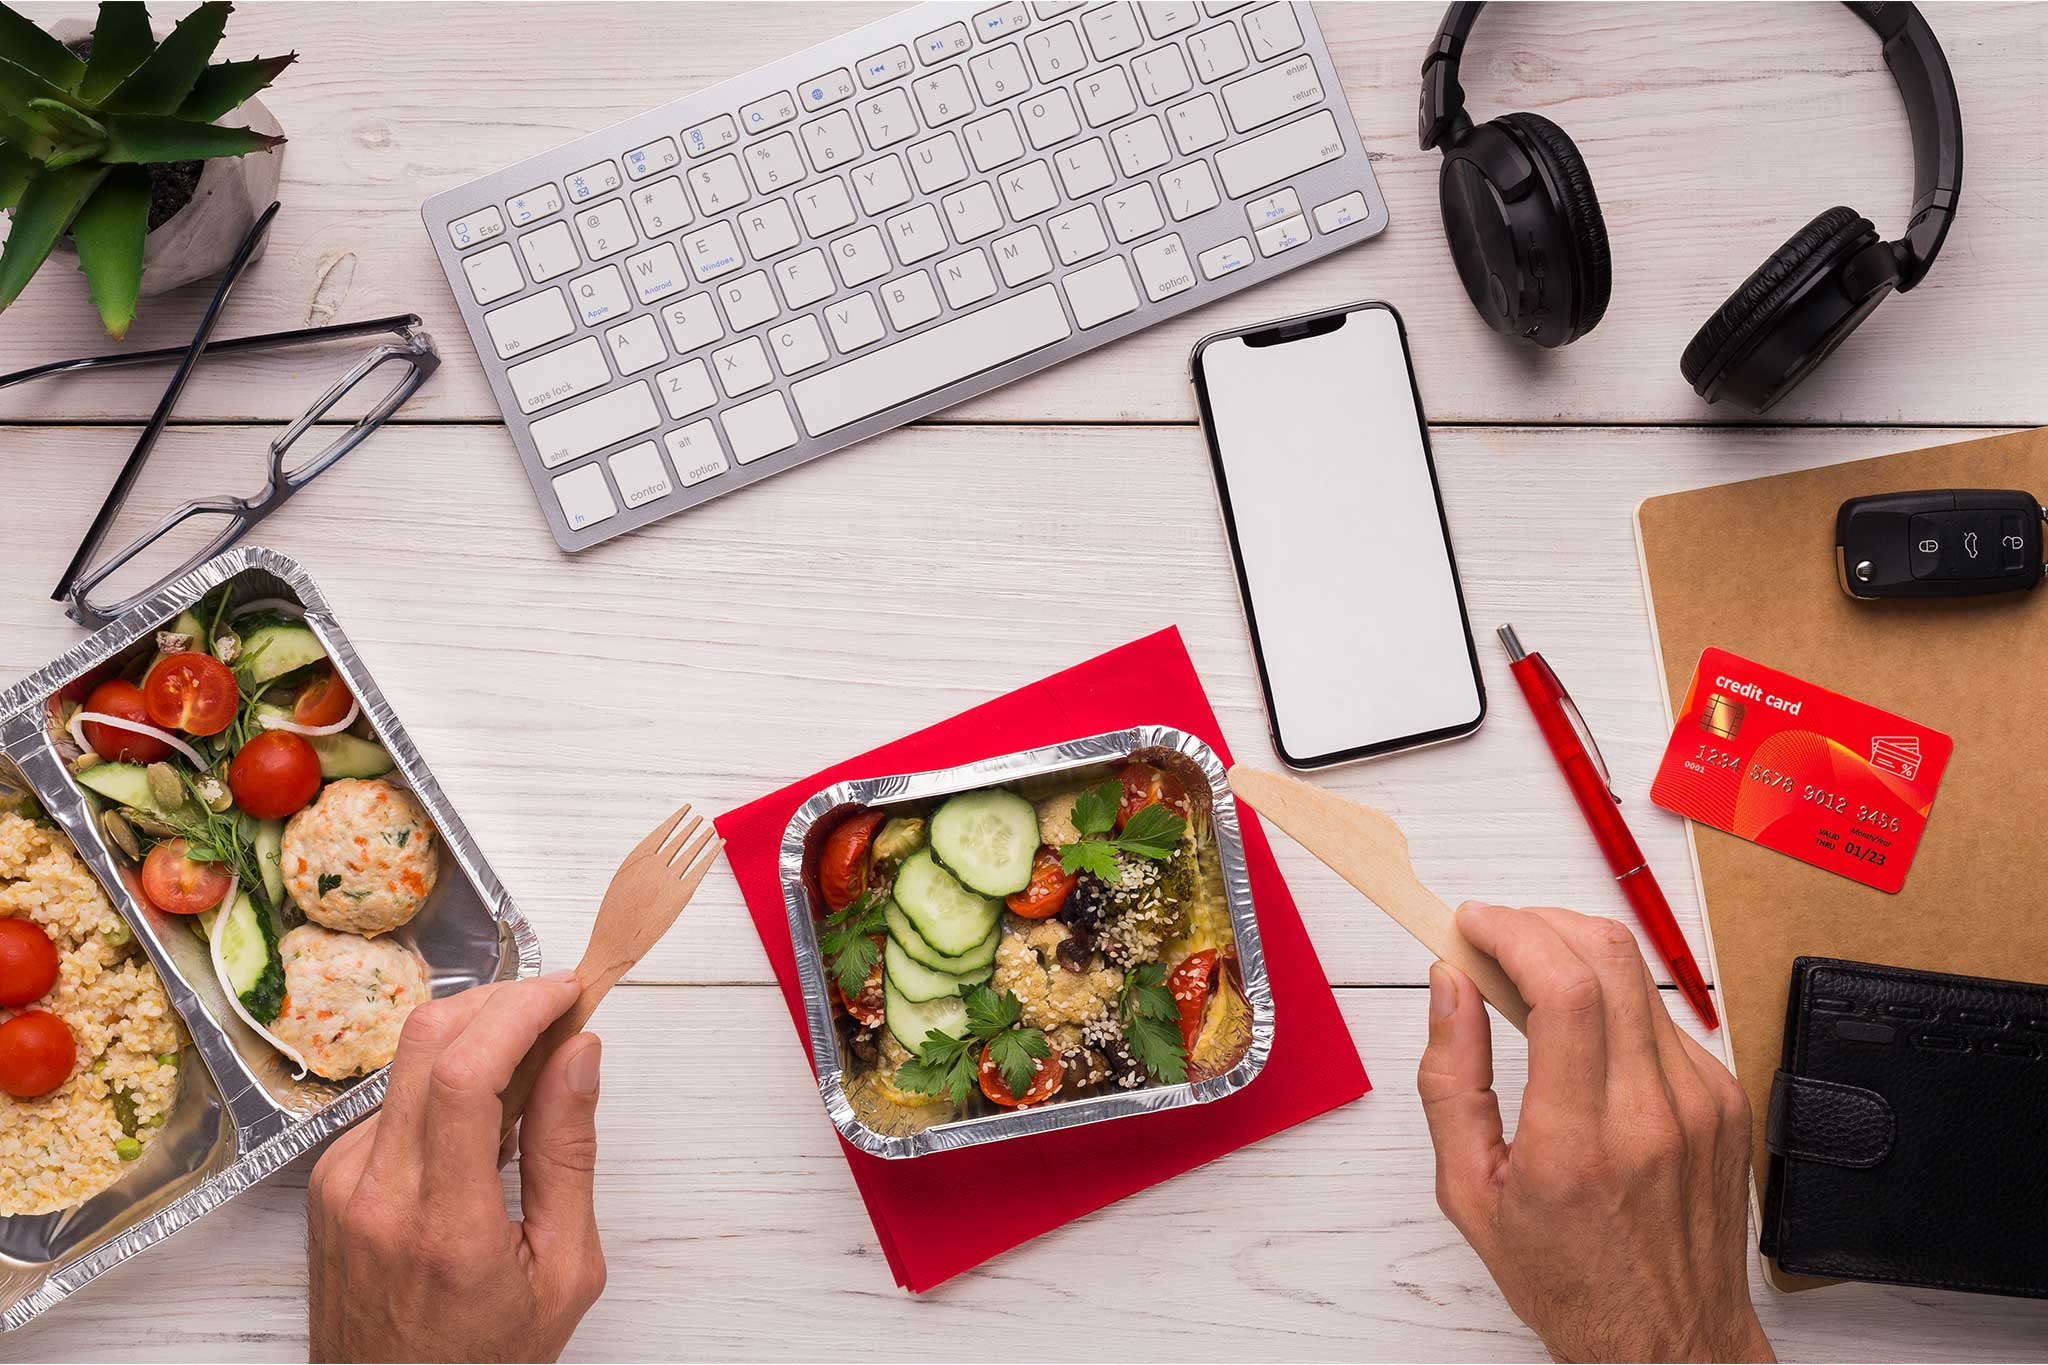 Delicious 9 to 5 office food delivery ideas